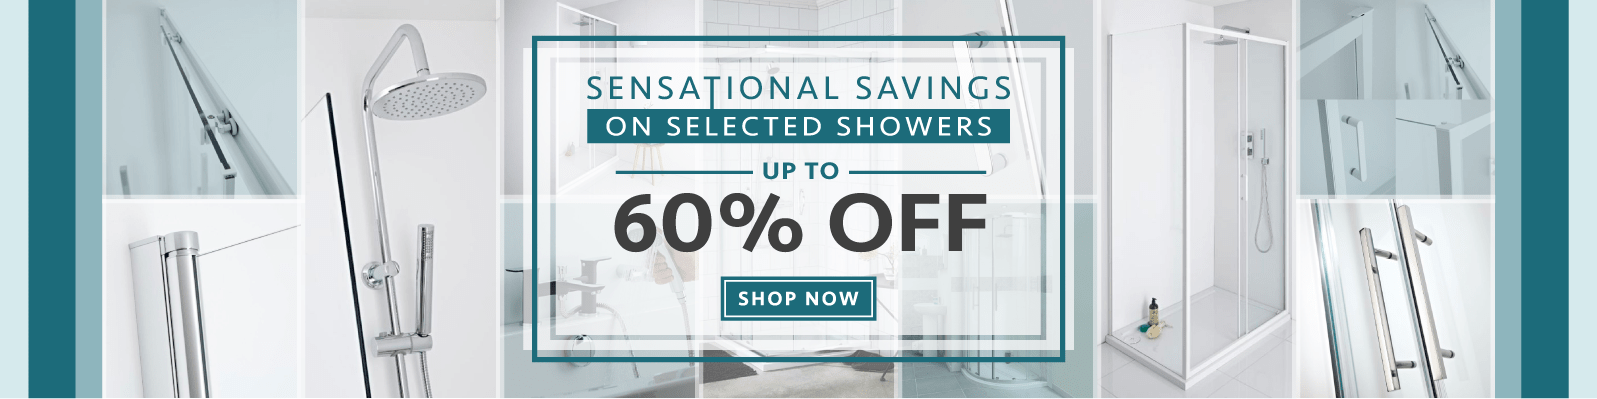 Sensational Savings on Selected Showers Up to 60% off